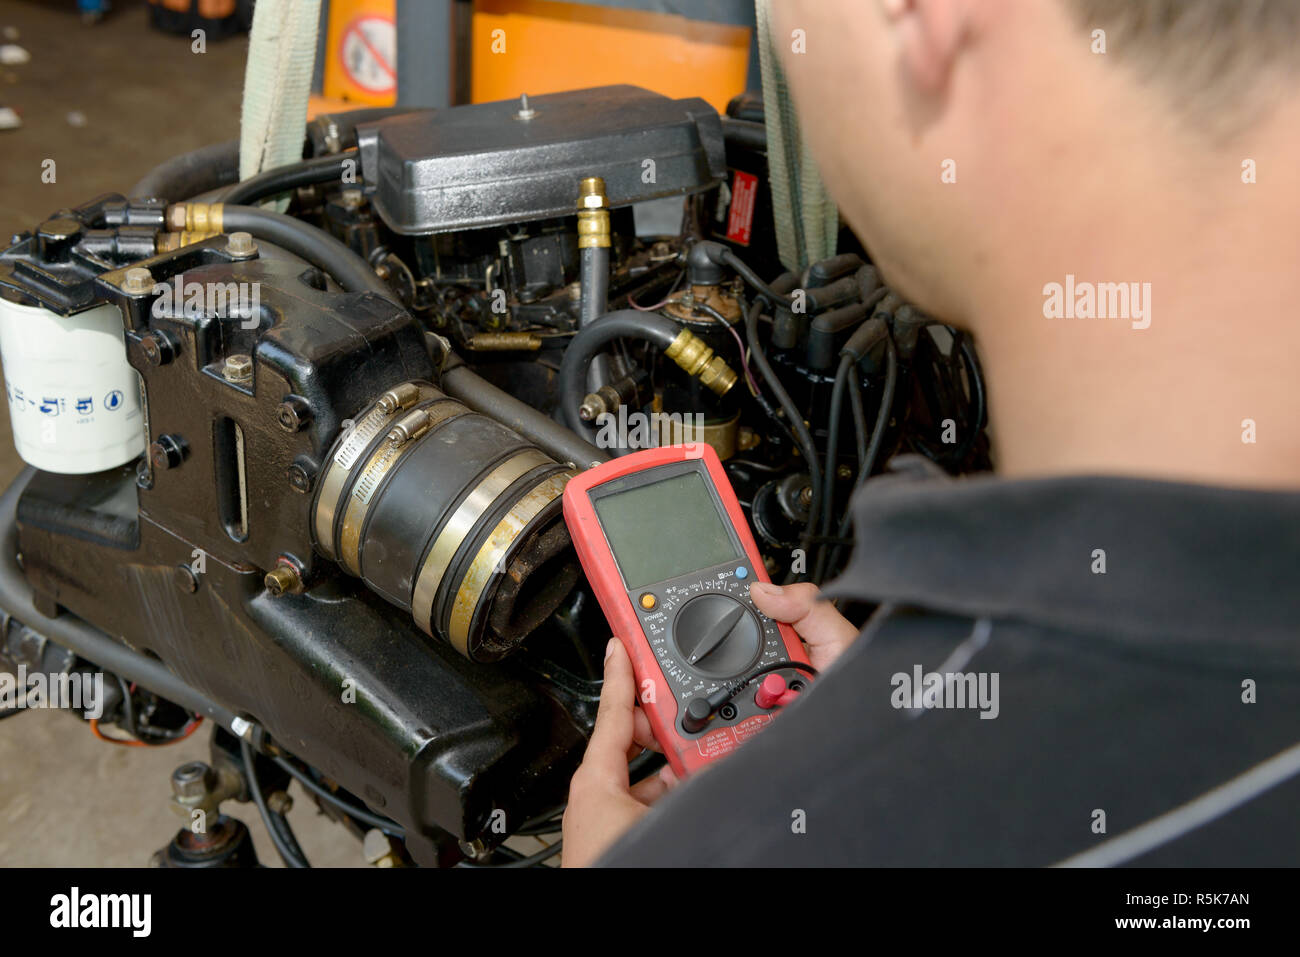 Ignition Coil Stock Photos & Ignition Coil Stock Images - Alamy